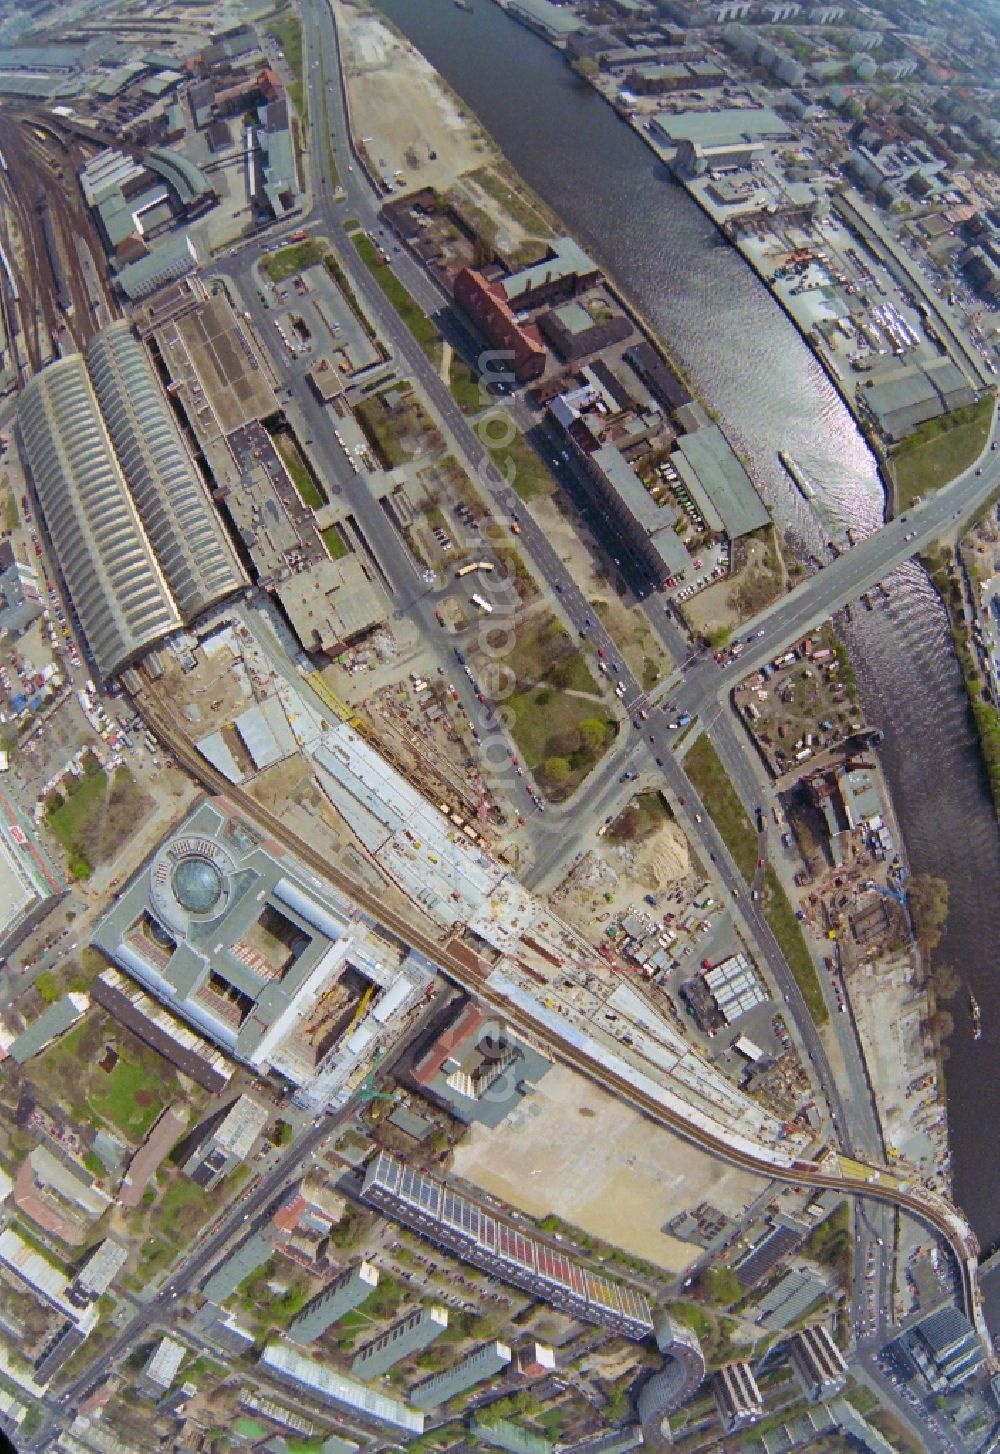 Berlin from the bird's eye view: Fisheye perspective construction site of track and Station railway building of the Deutsche Bahn in the district Friedrichshain in Berlin, Germany